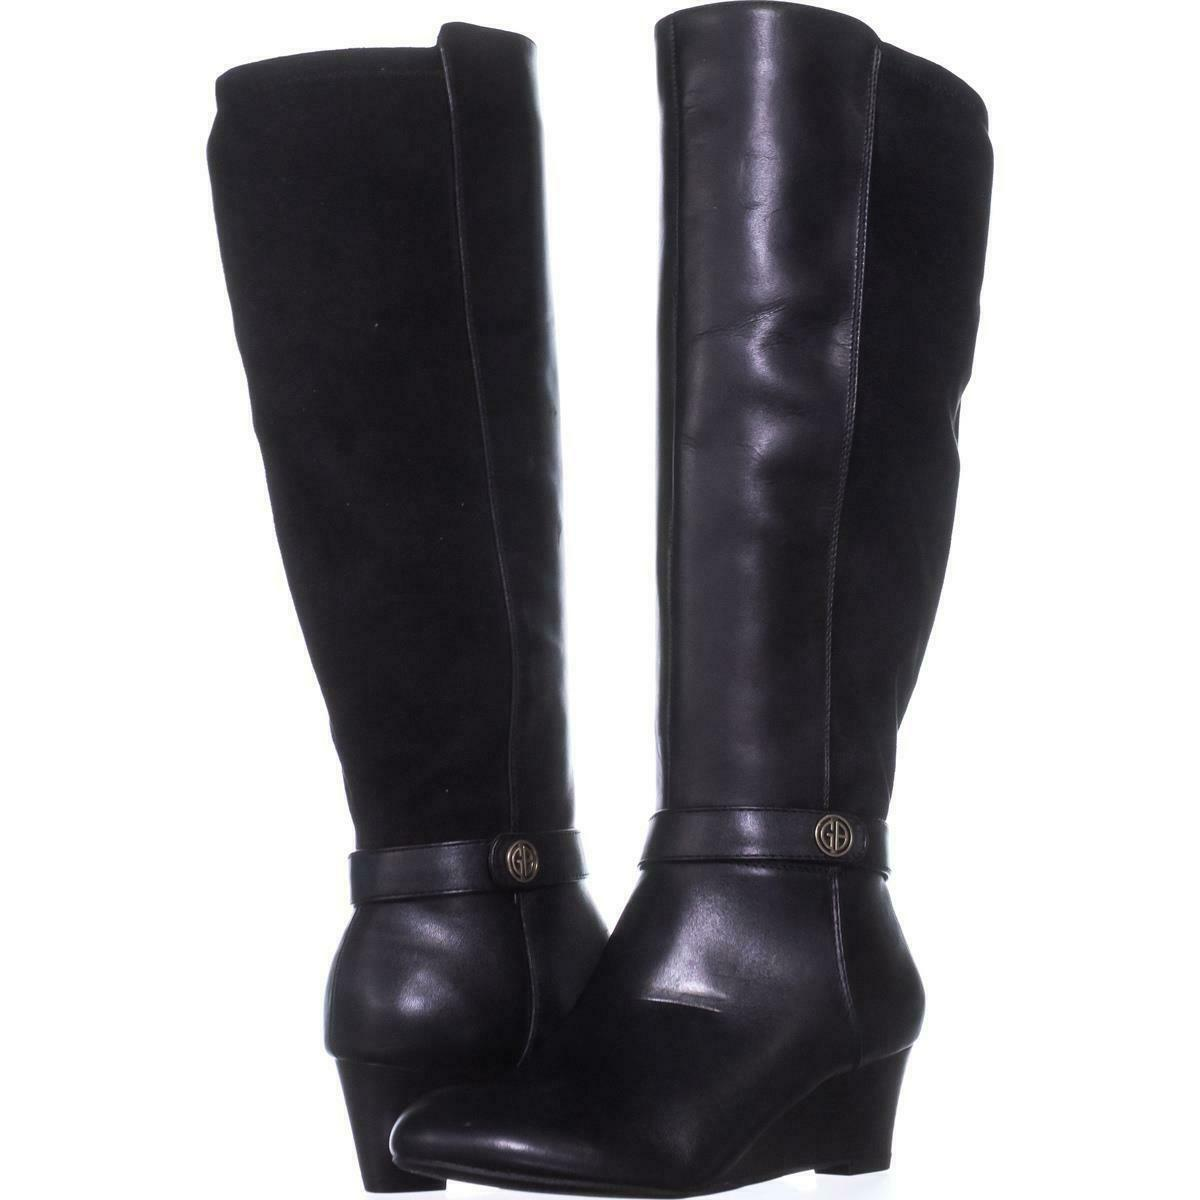 Primary image for GB35 Dafnee Knee High Wedge Boots 582, Black, 5 US